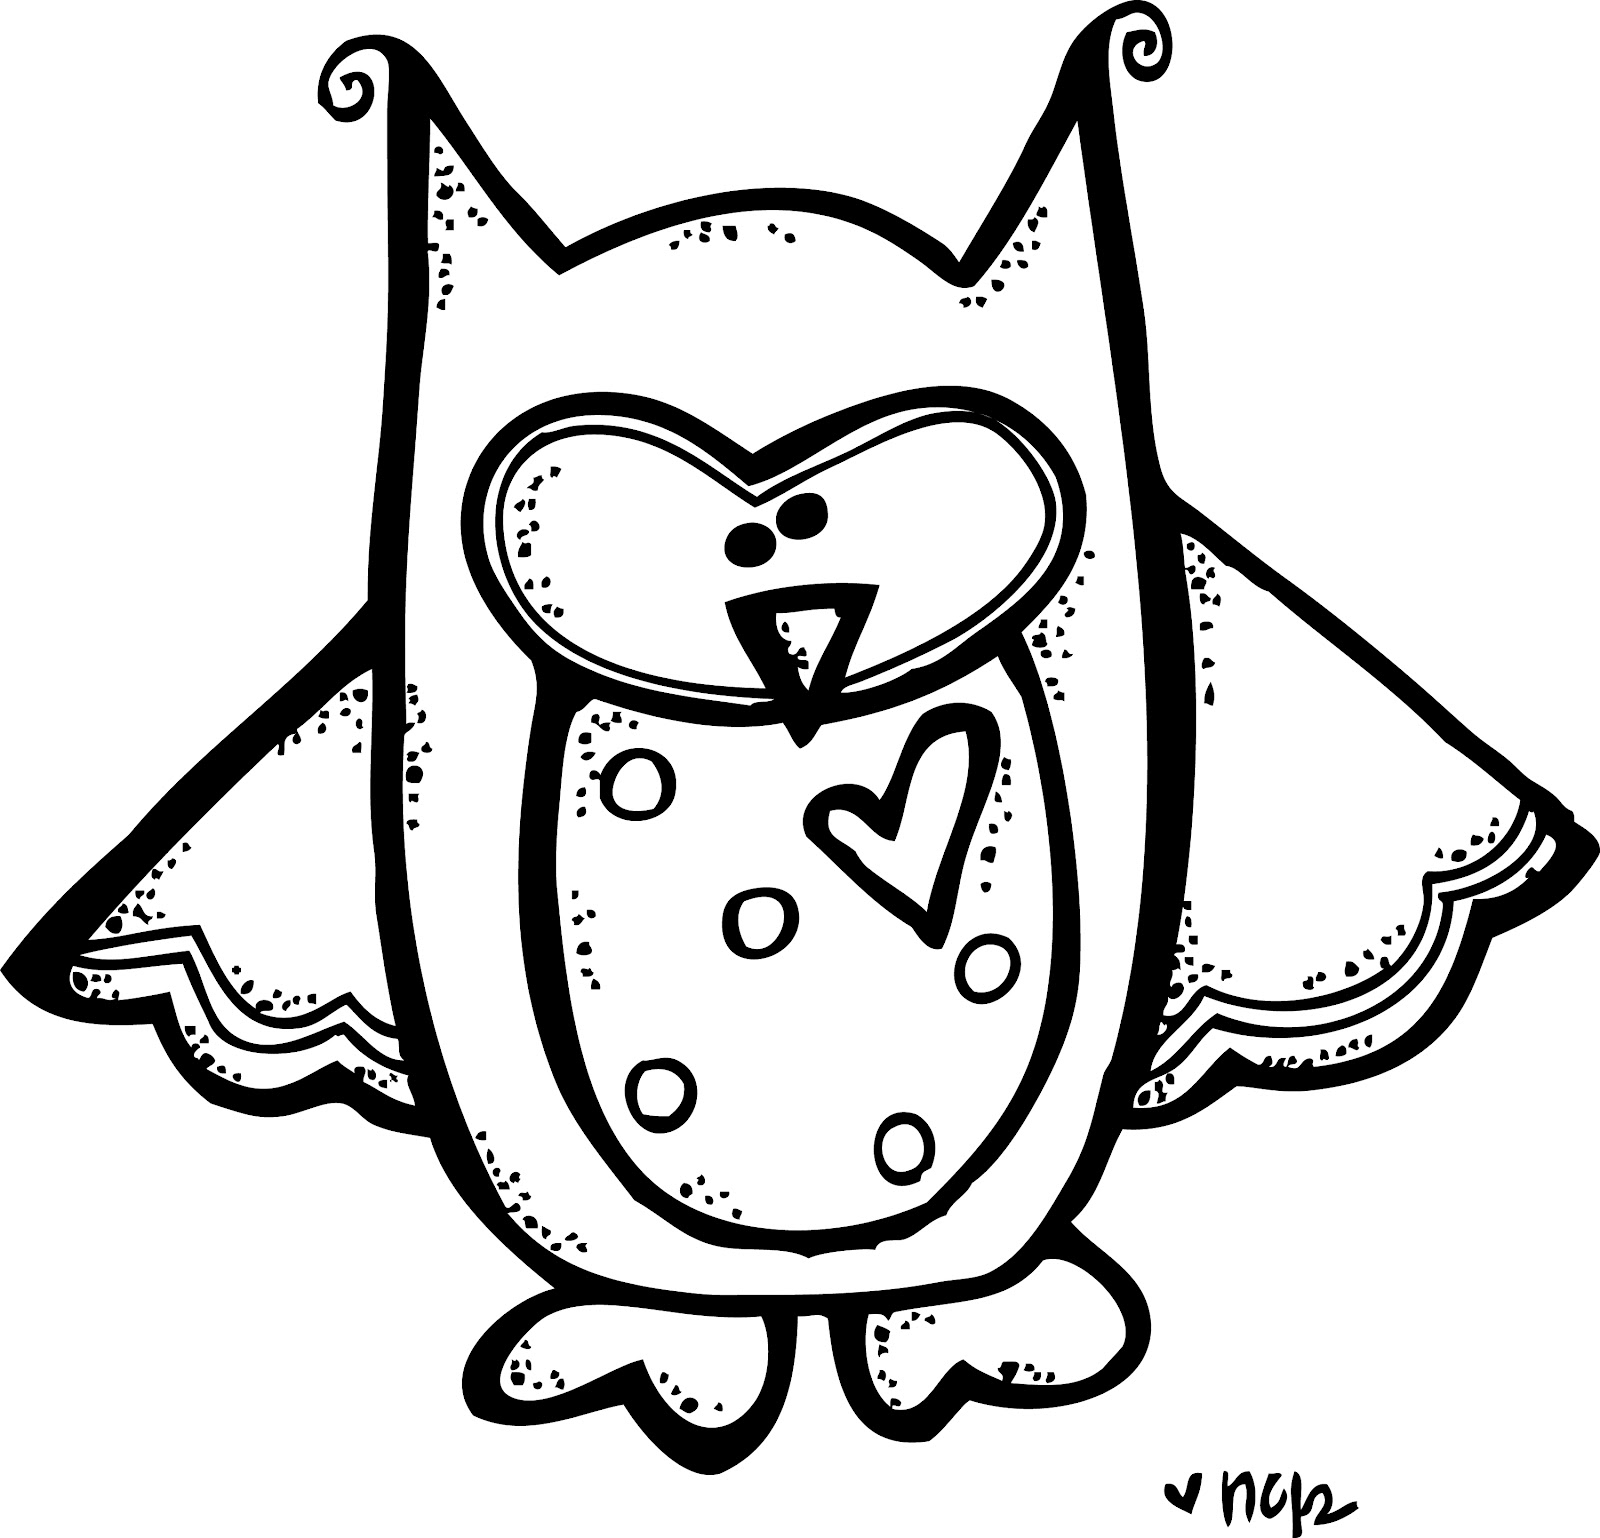 White Owl Clip Art Black and White-White Owl Clip Art Black and White-17